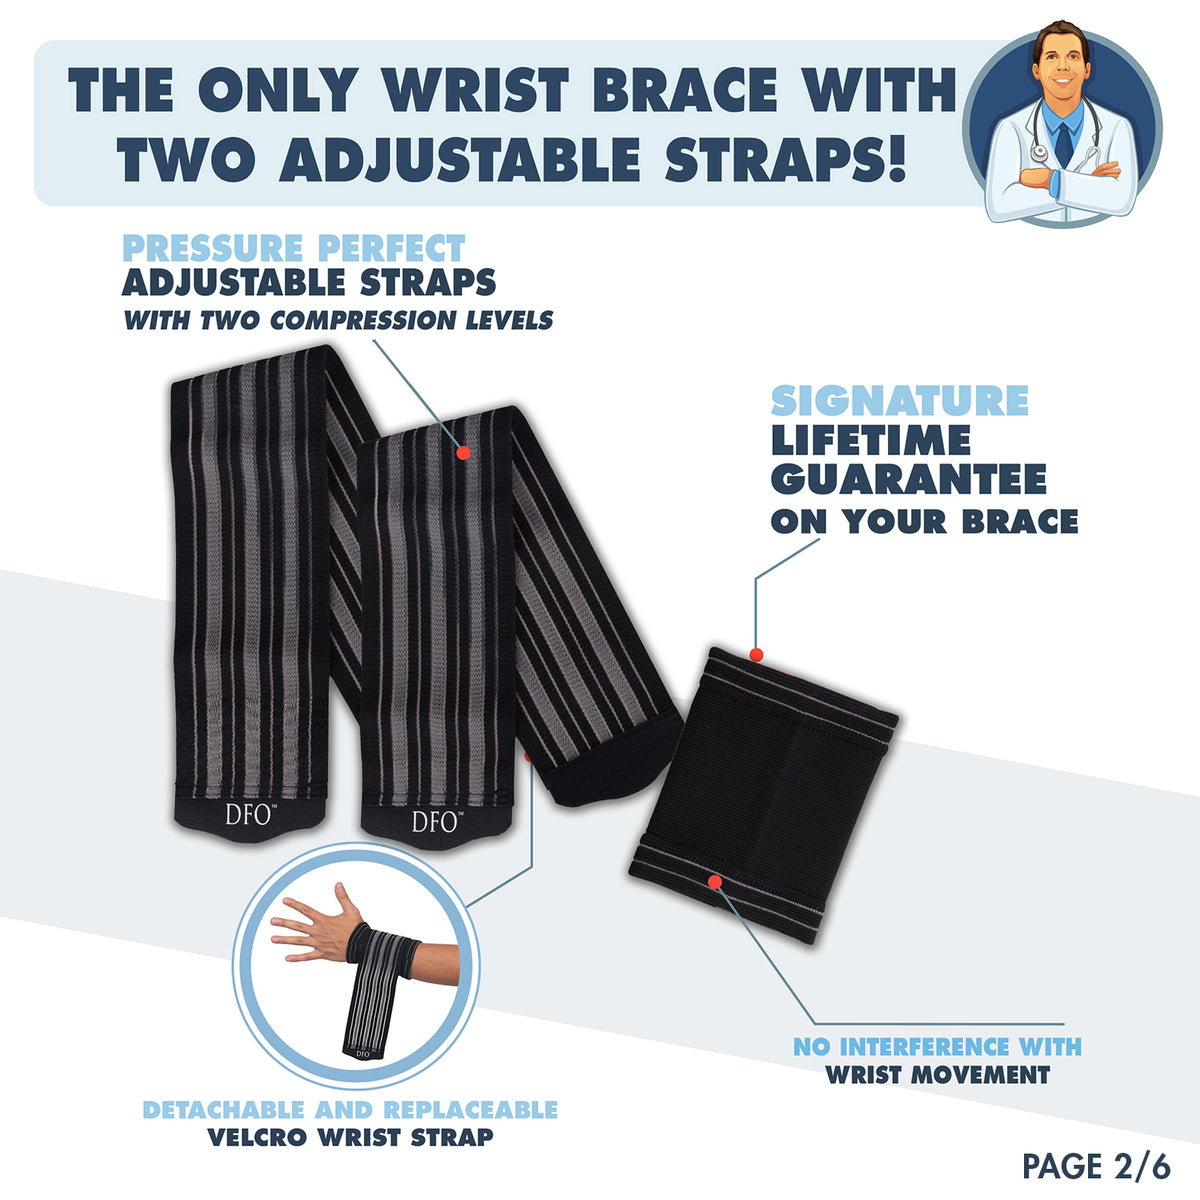 Dr. Frederick's Original Pressure Perfect Wrist Brace System -- for Wrist Pain